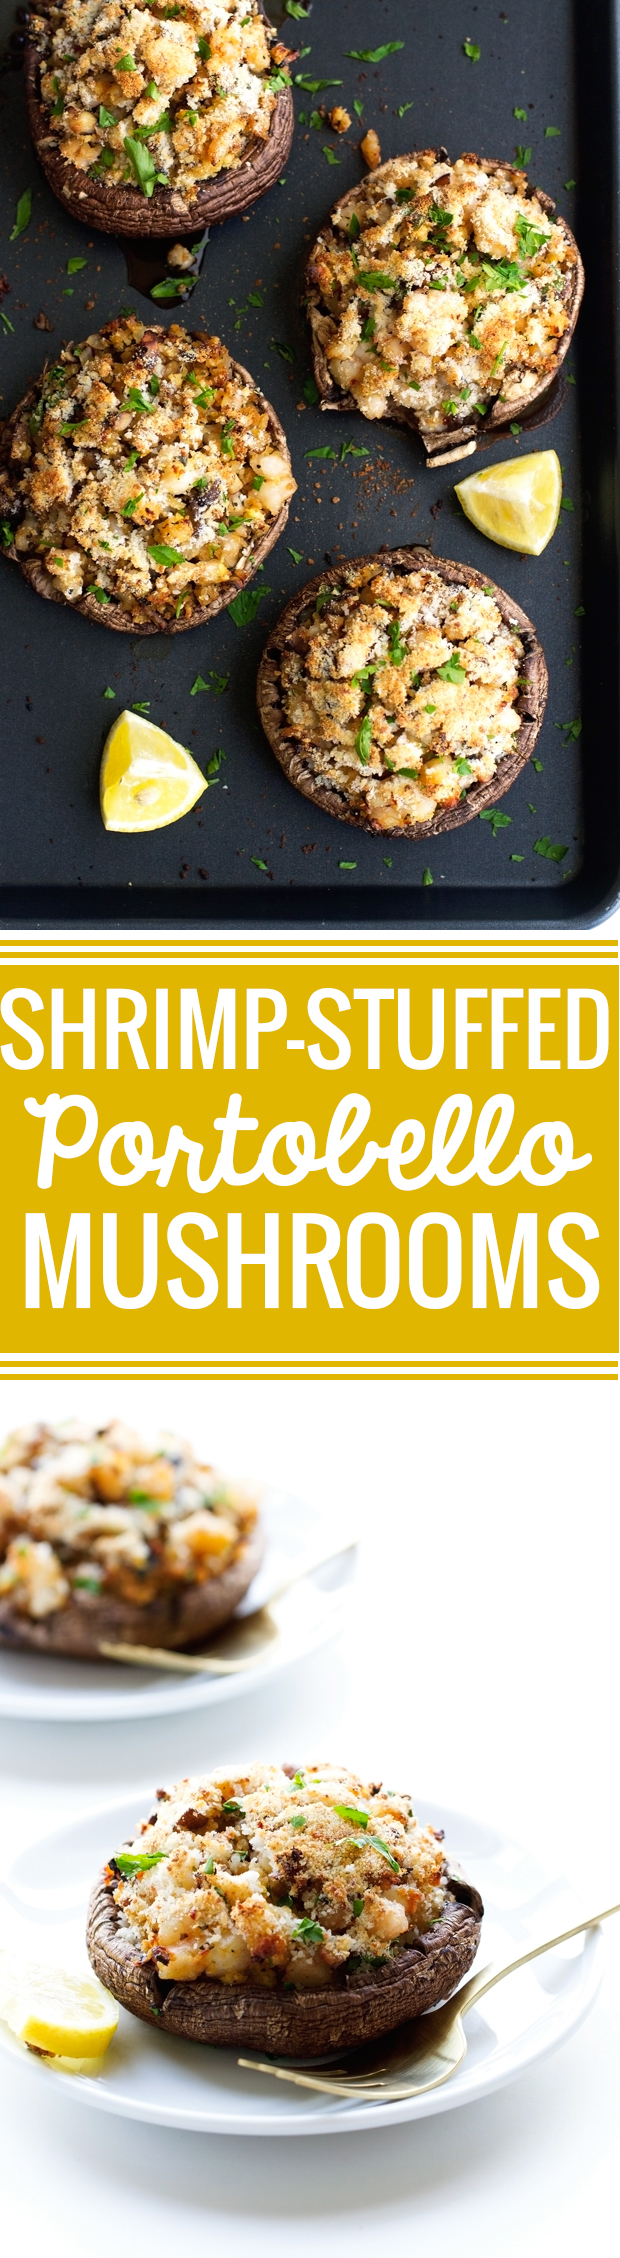 Shrimp Stuffed Portobello Mushrooms - Easy to make, waistline friendly, and just 30 minutes from start to finish! #stuffedmushrooms #shrimp #portobellowmushrooms | Littlespicejar.com